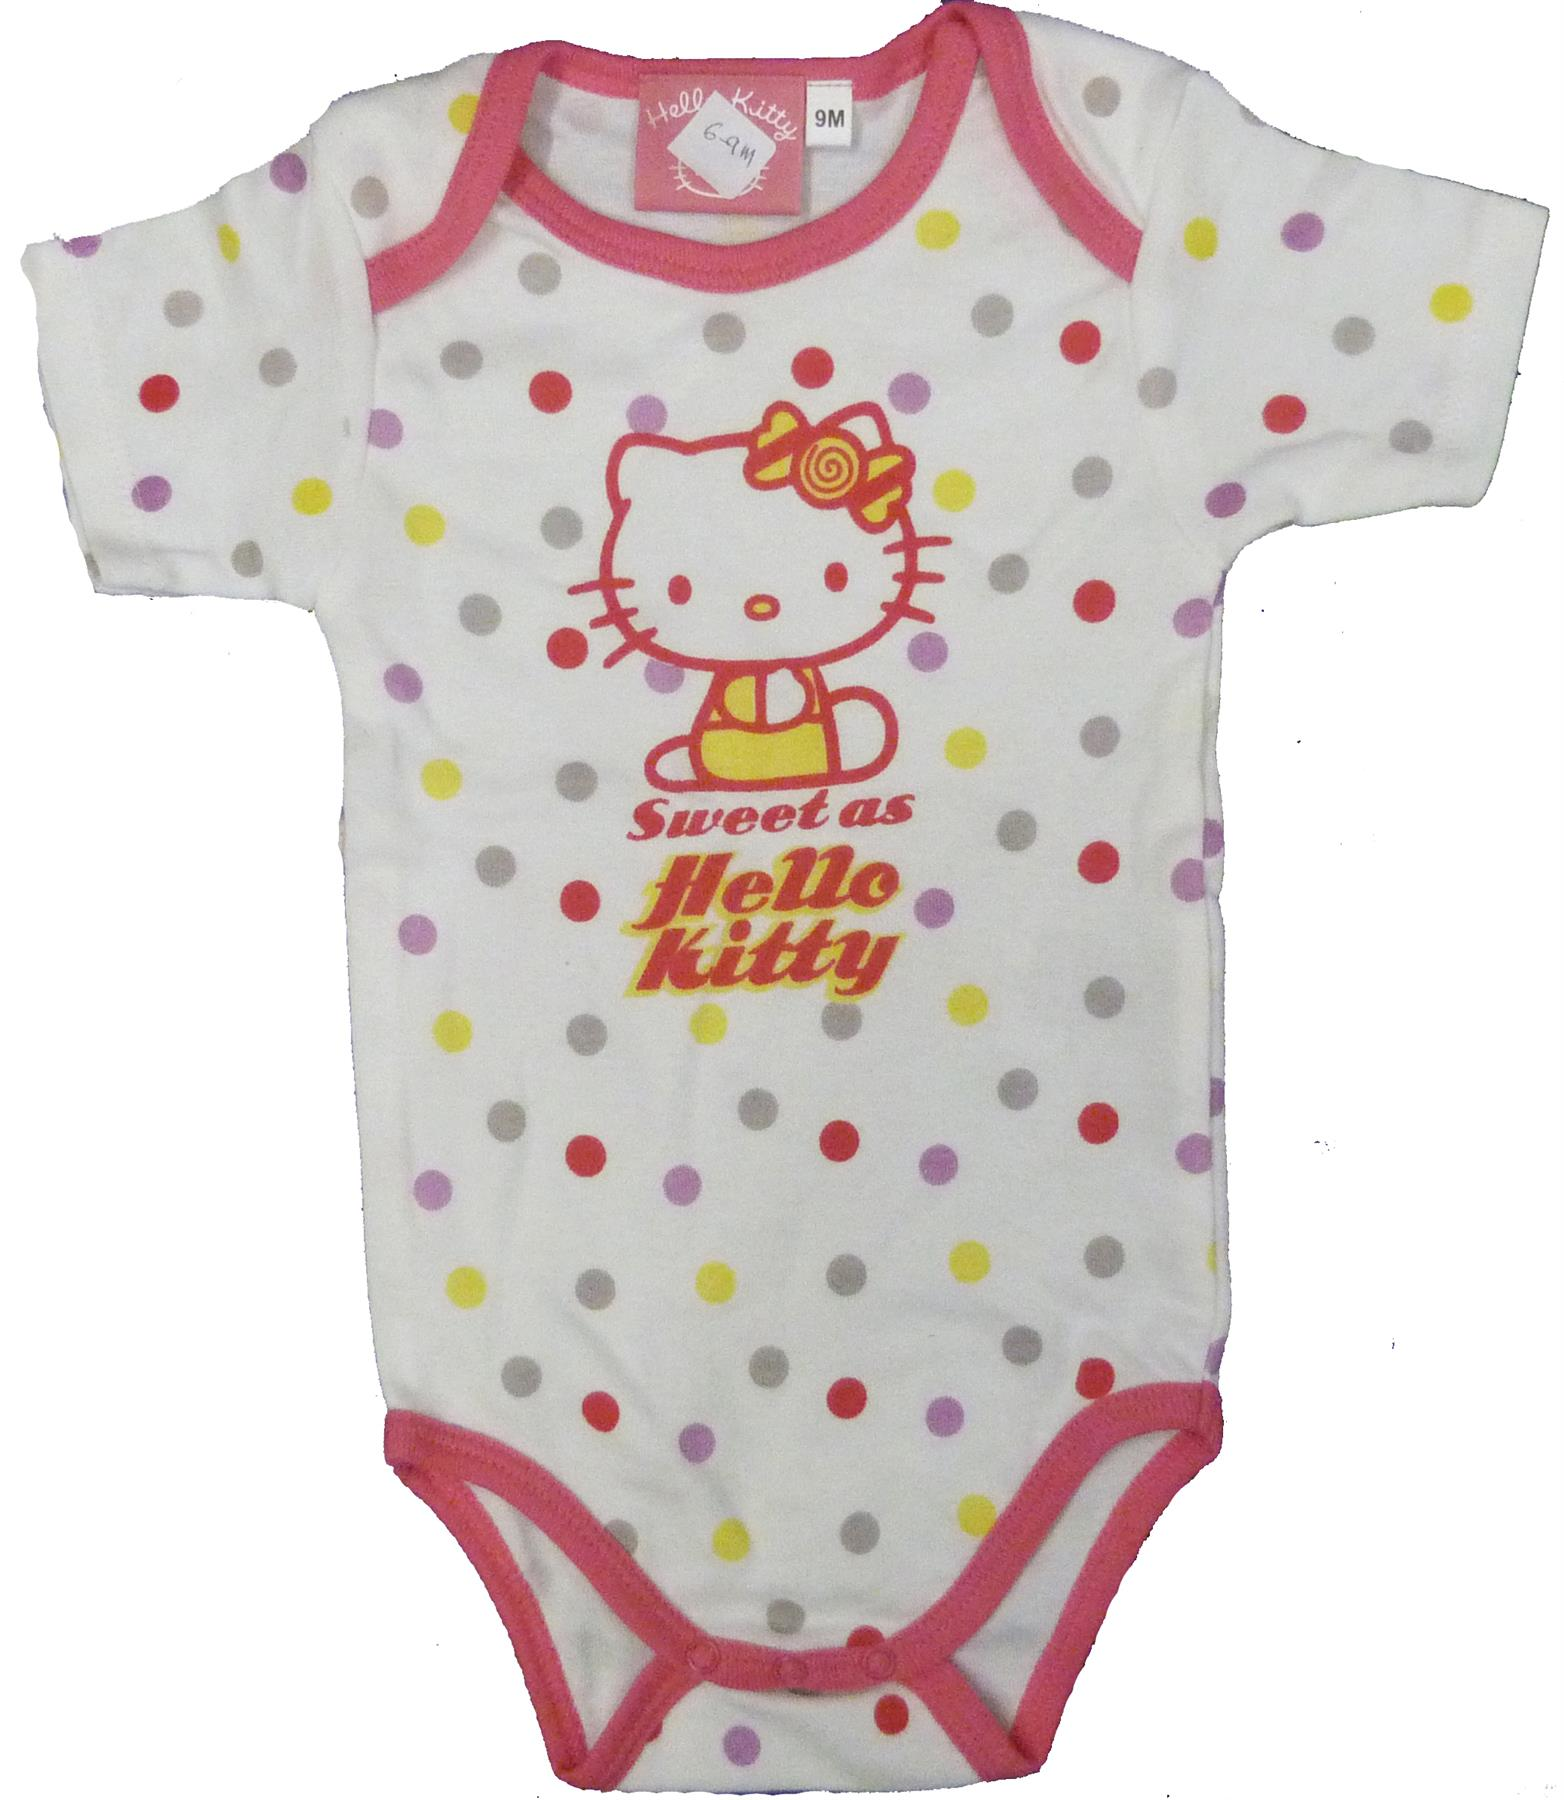 Assorted 4Y US Hello Kitty Kids 3-Piece Set